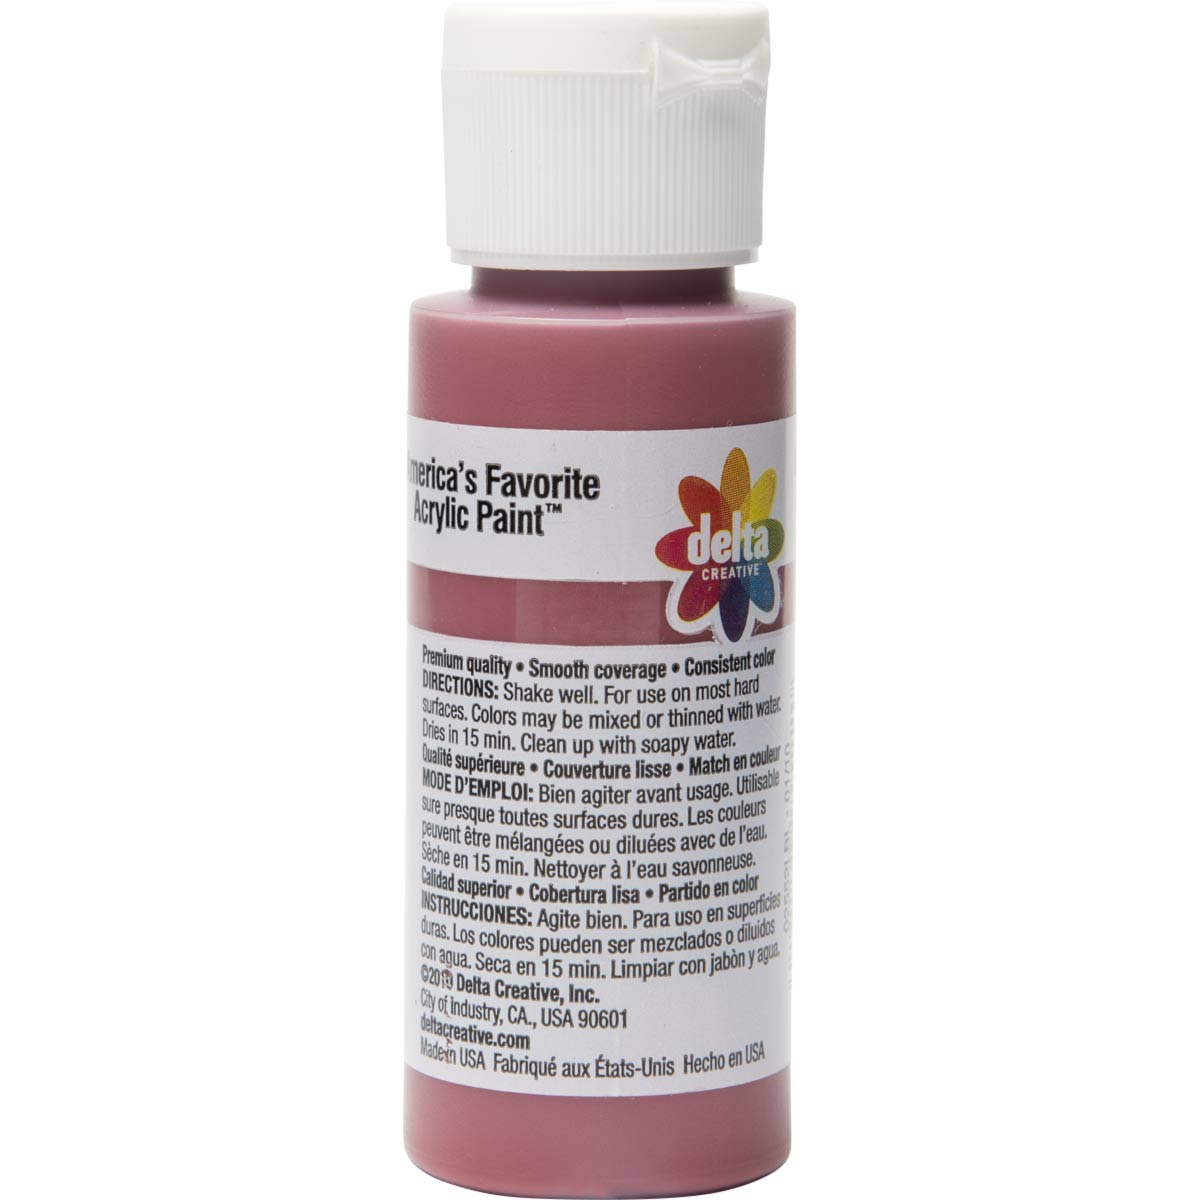 Delta Ceramcoat ® Acrylic Paint - Moroccan Red, 2 oz.